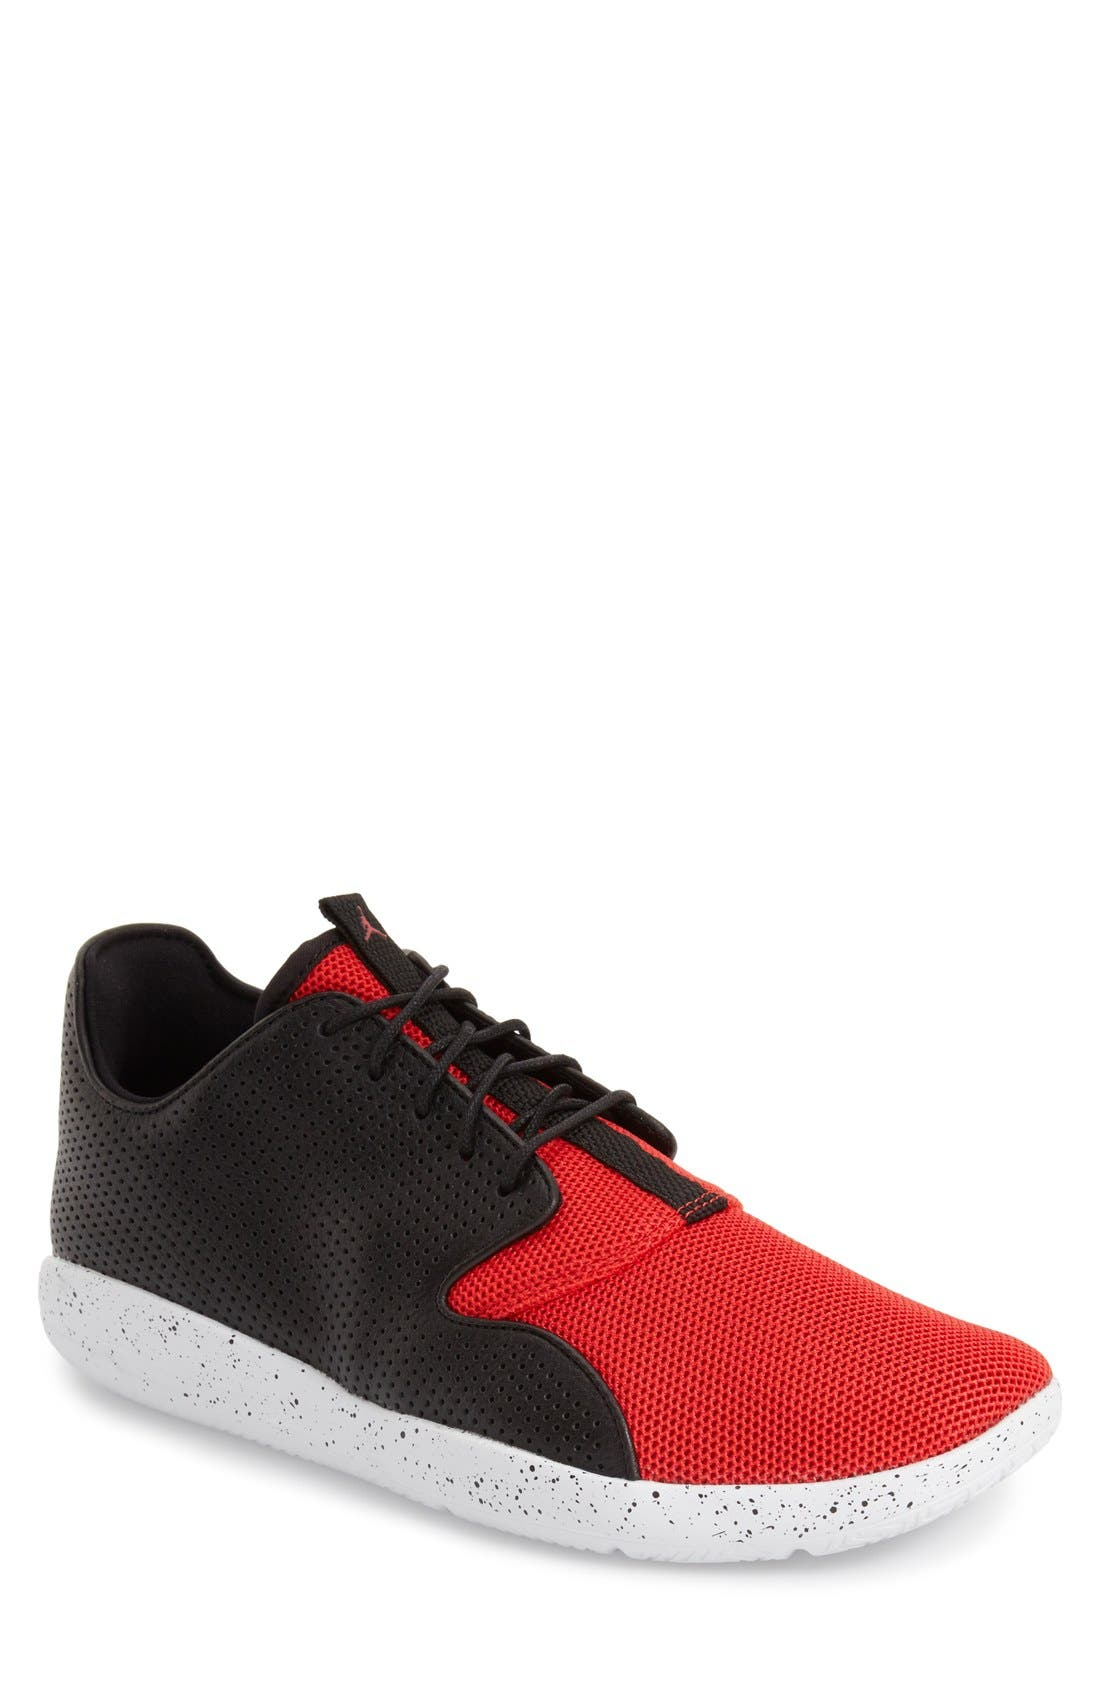 Main Image - Nike 'Jordan Eclipse' Sneaker (Men)